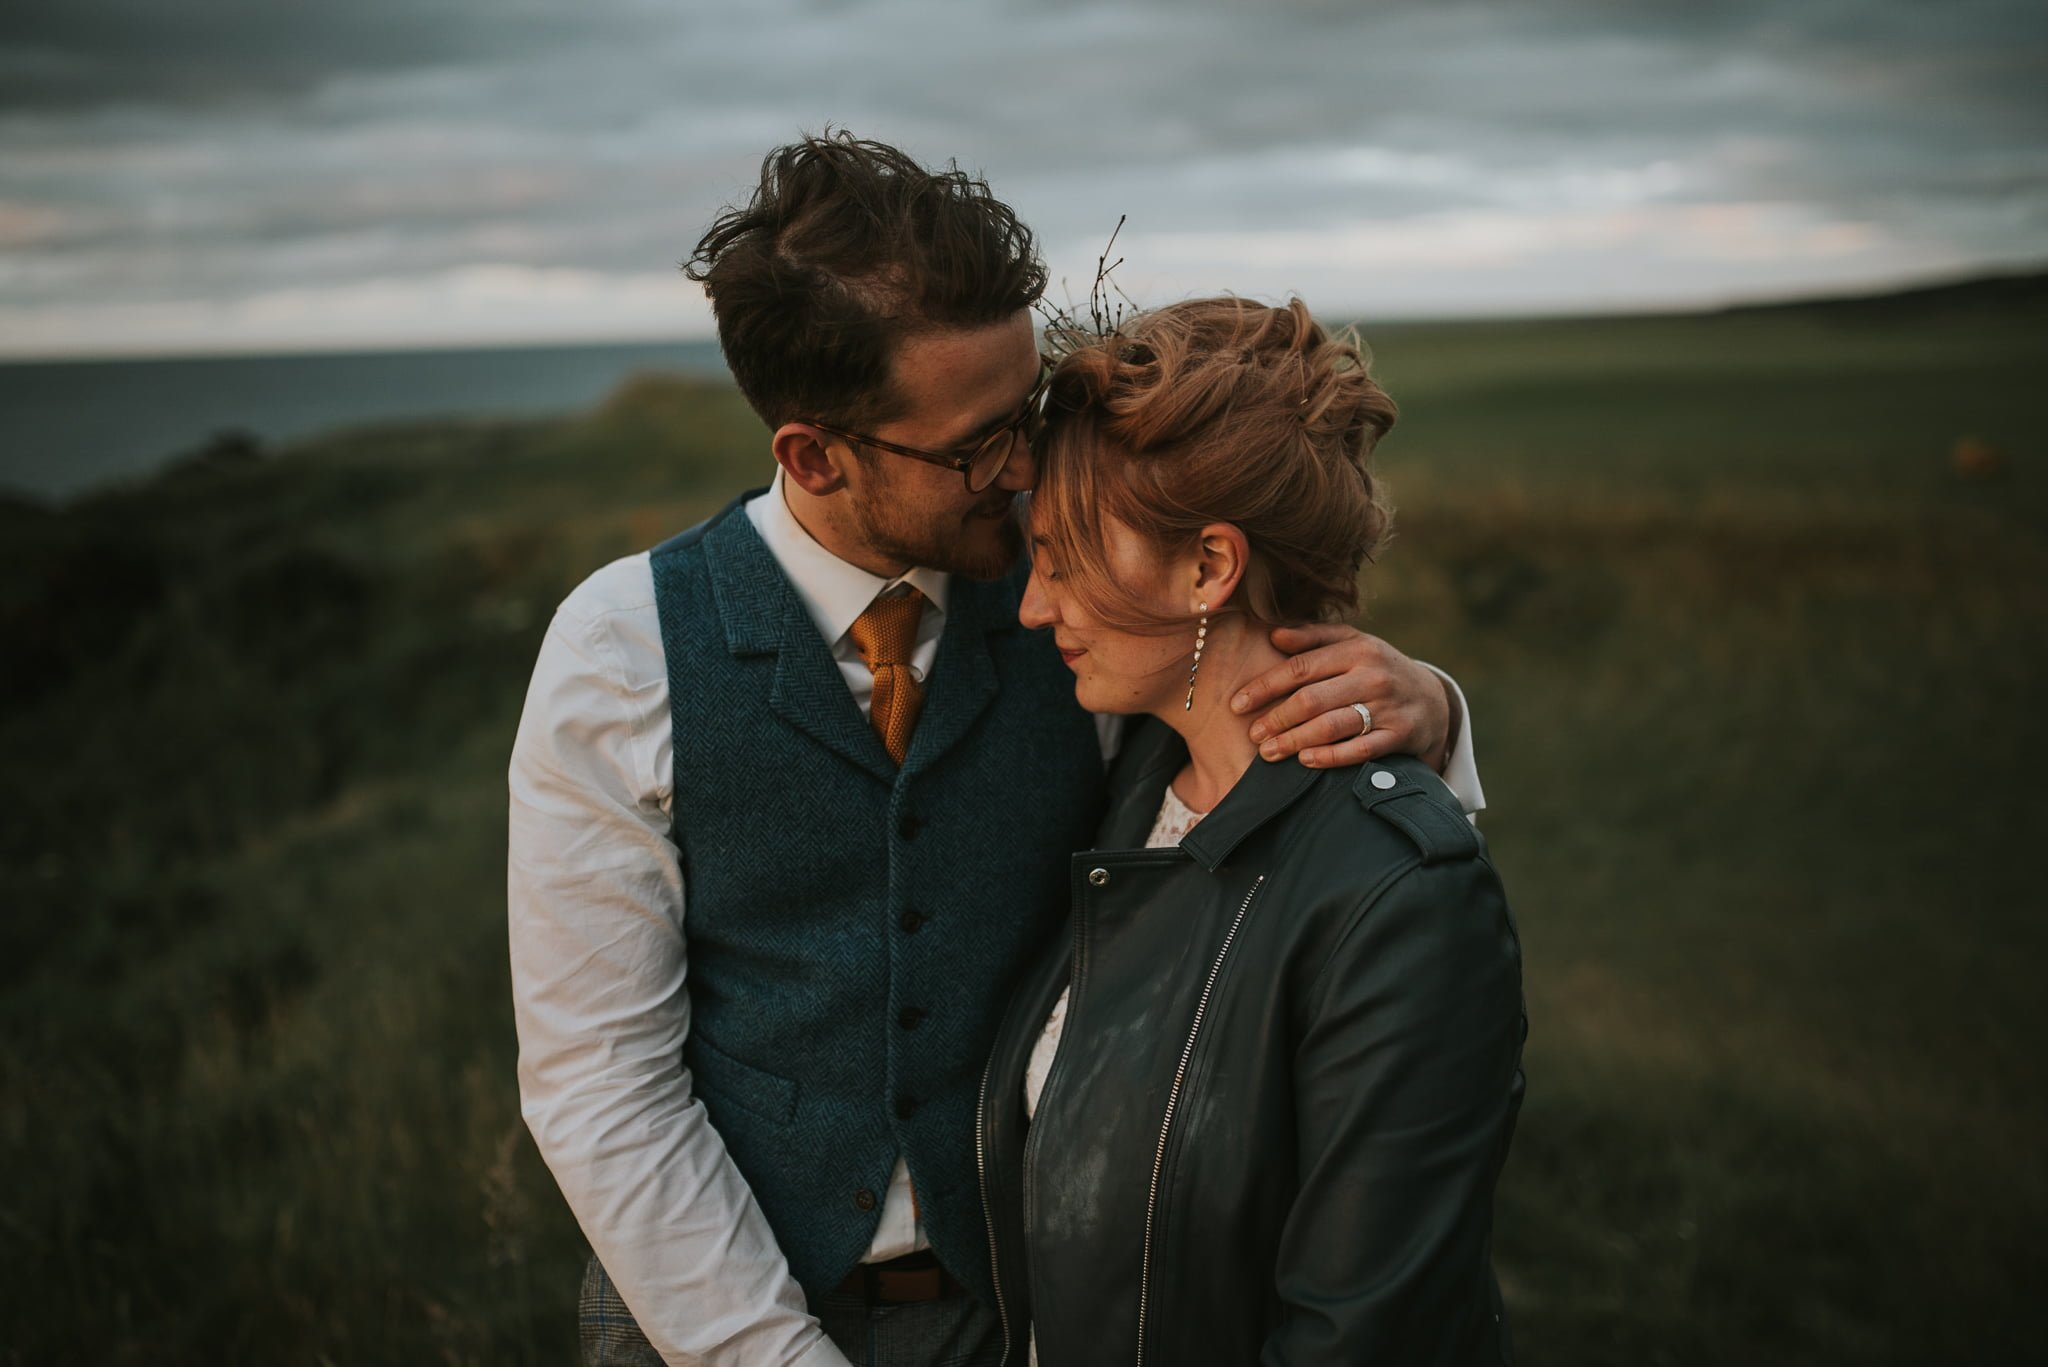 couple by the sea embracing bride wearing leather jacket